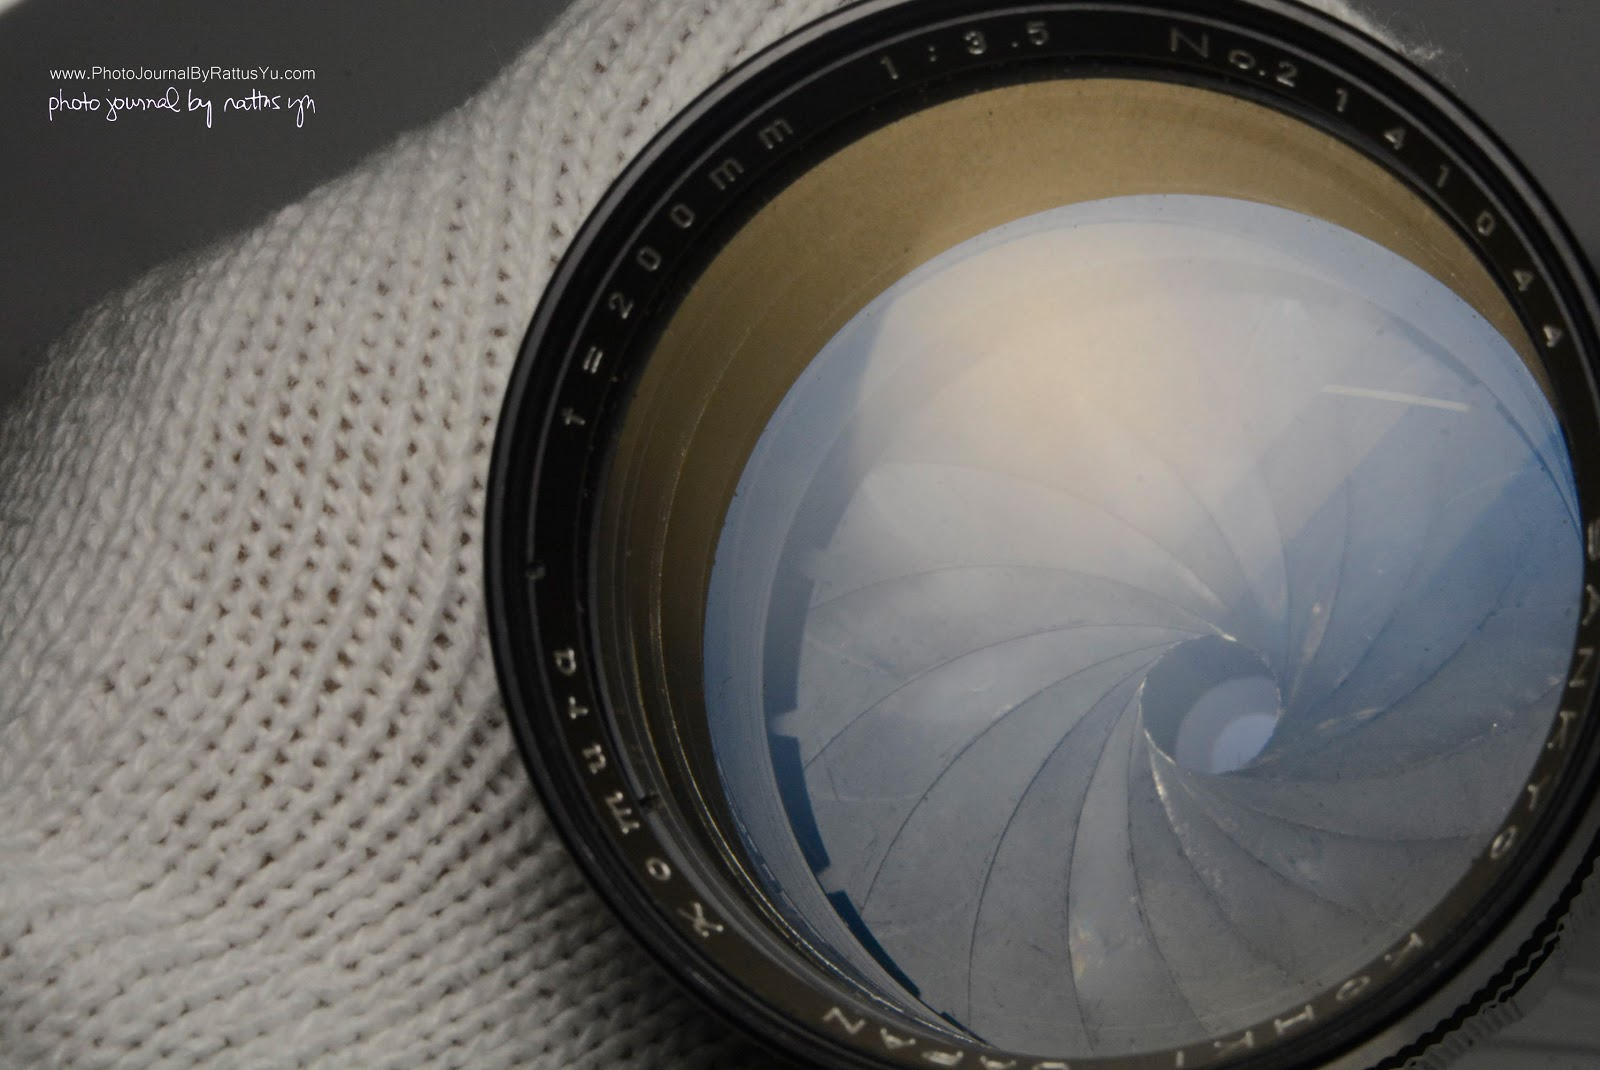 Komura 200mm f/3.5, Converting the Leica Visoflex Adapter From M/SR to N/AI